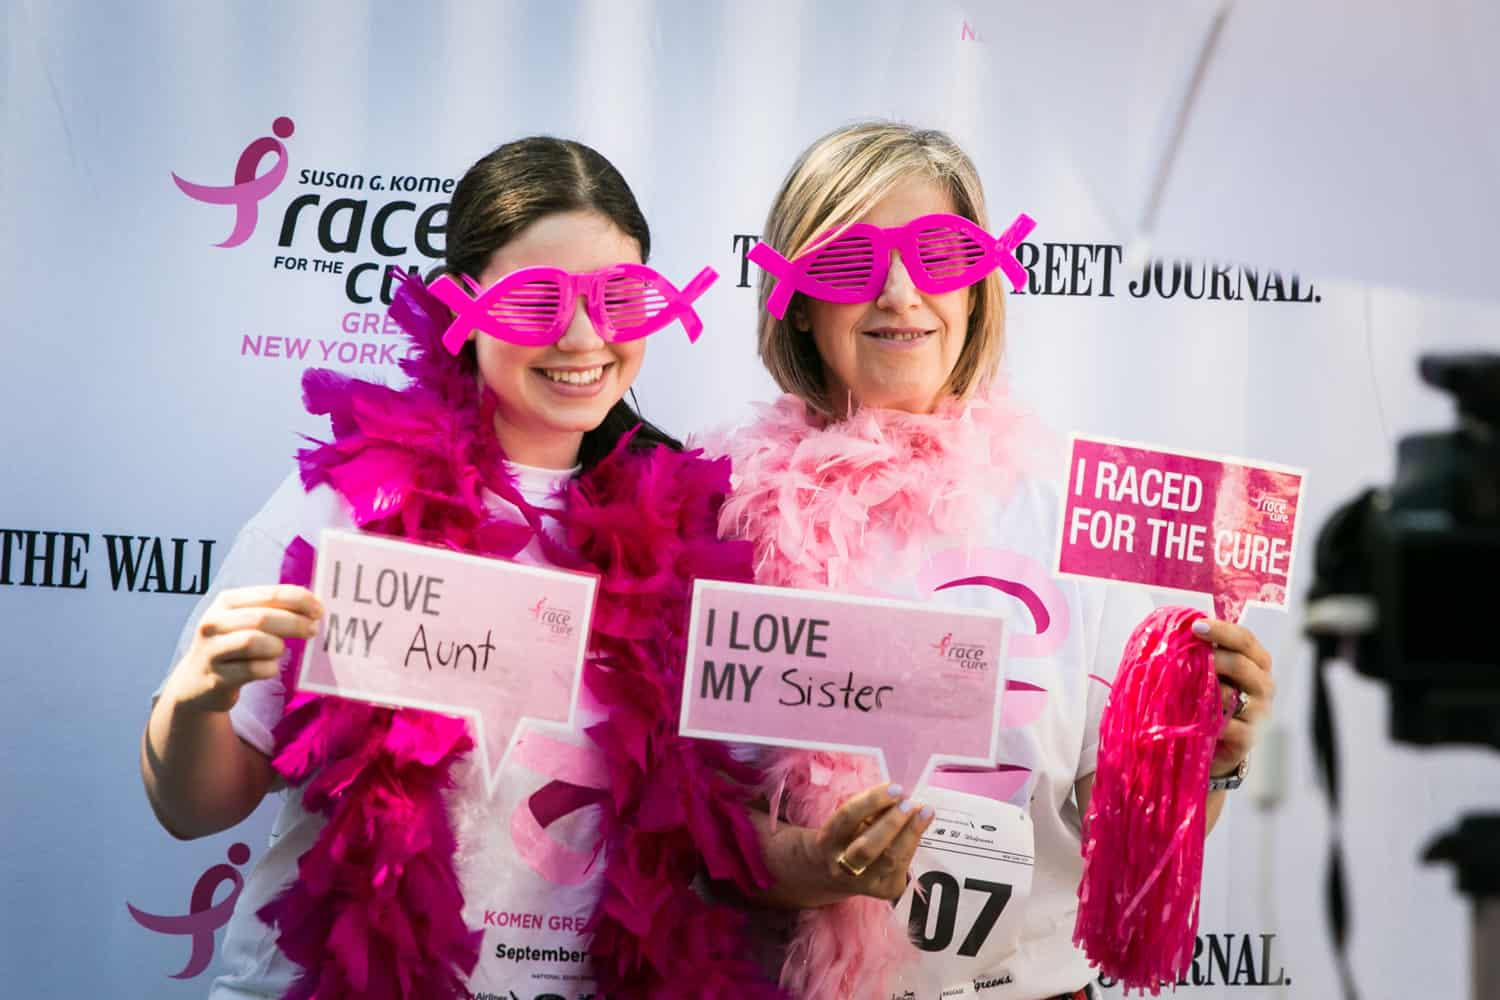 NYC Race for the Cure photos of two women clowning around at photobooth